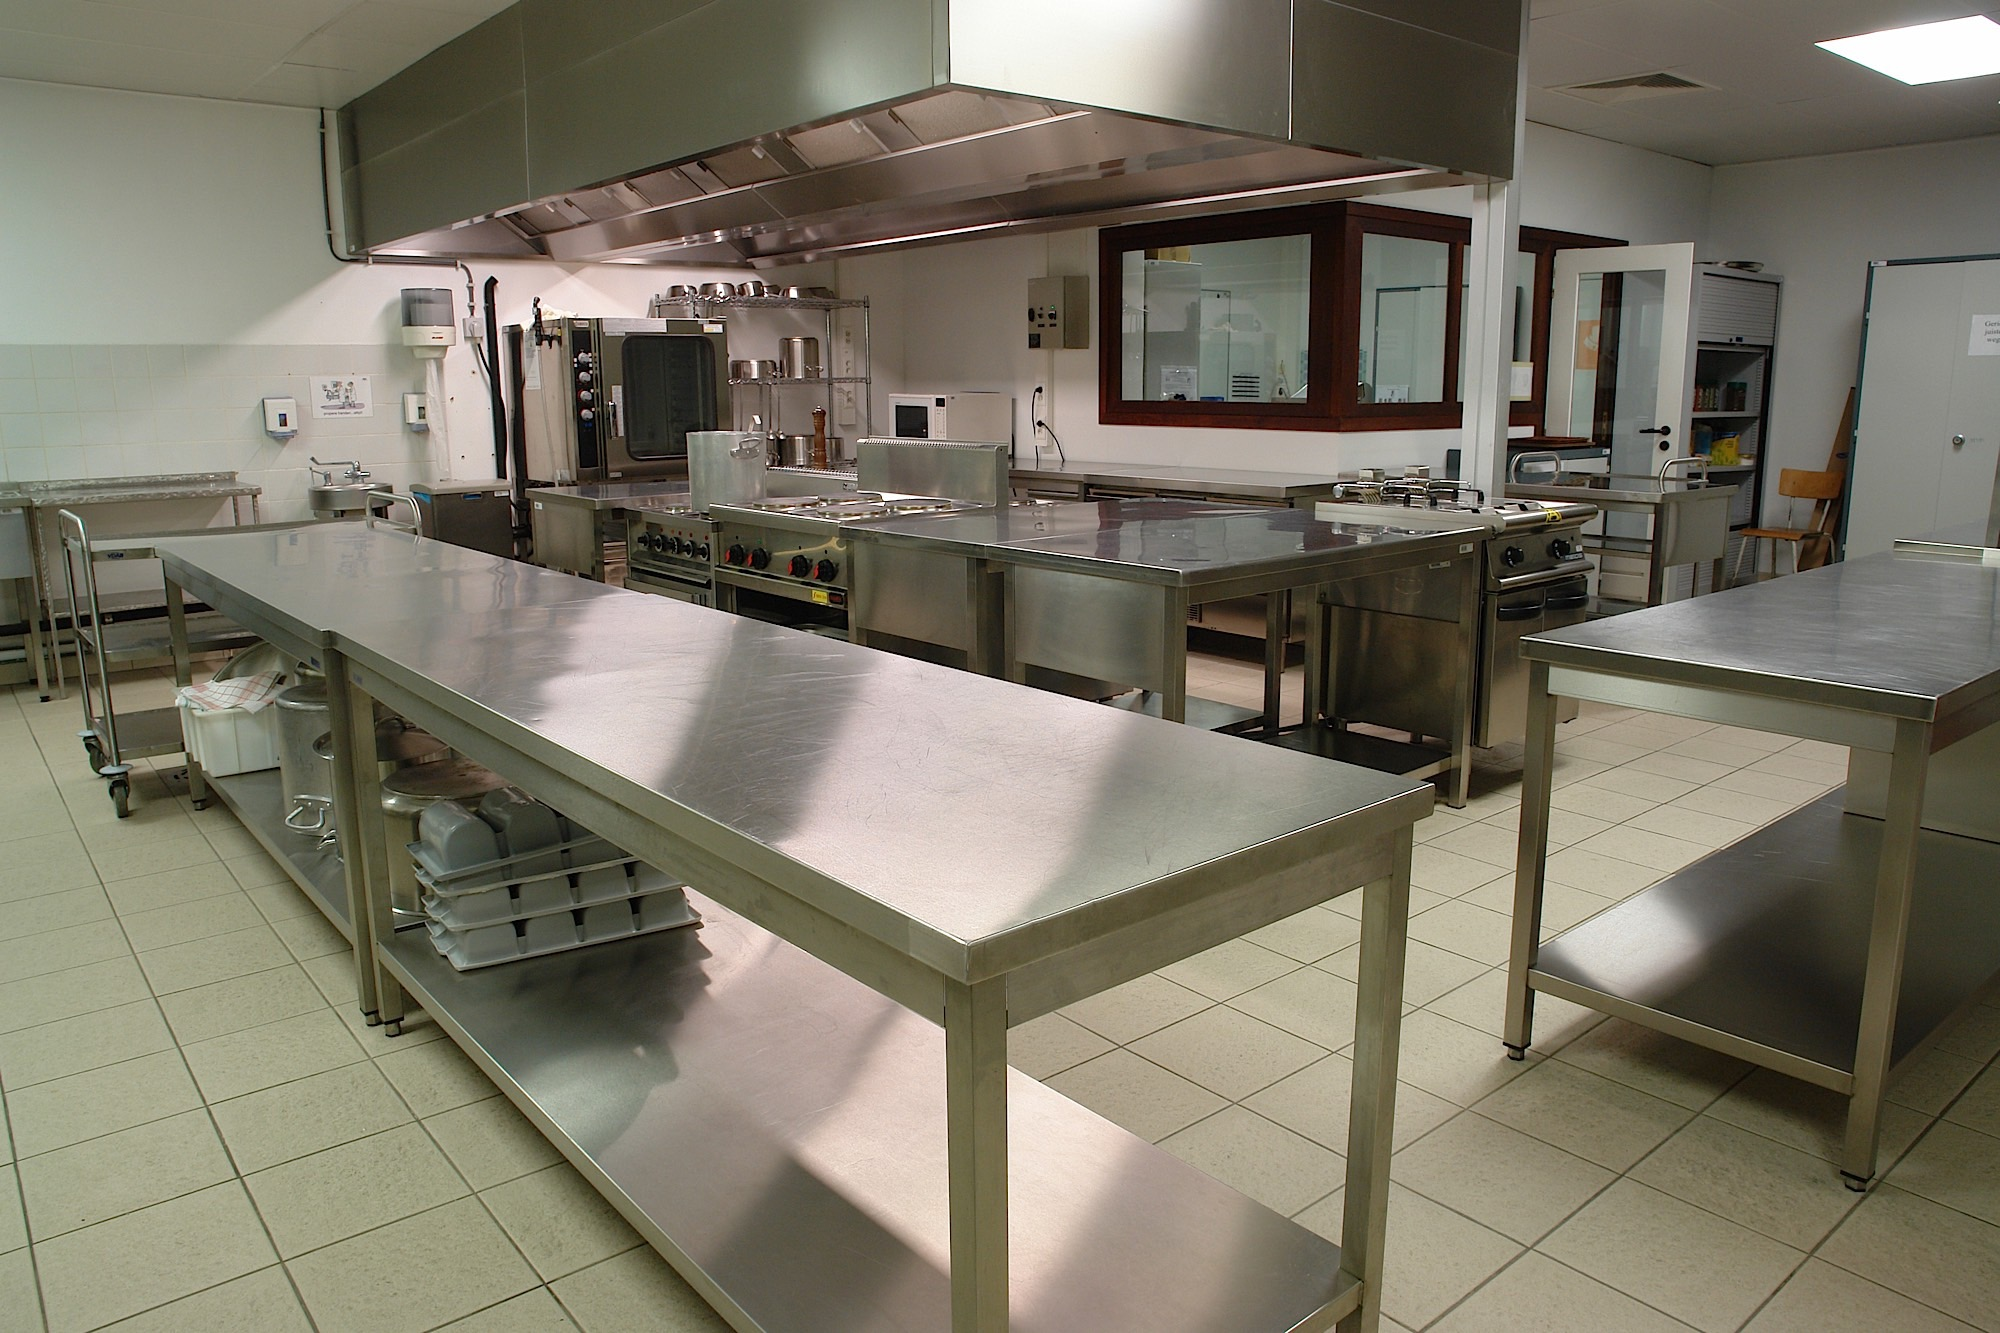 commercial seattle services hood cleaning restaurant equipment washington service kitchen